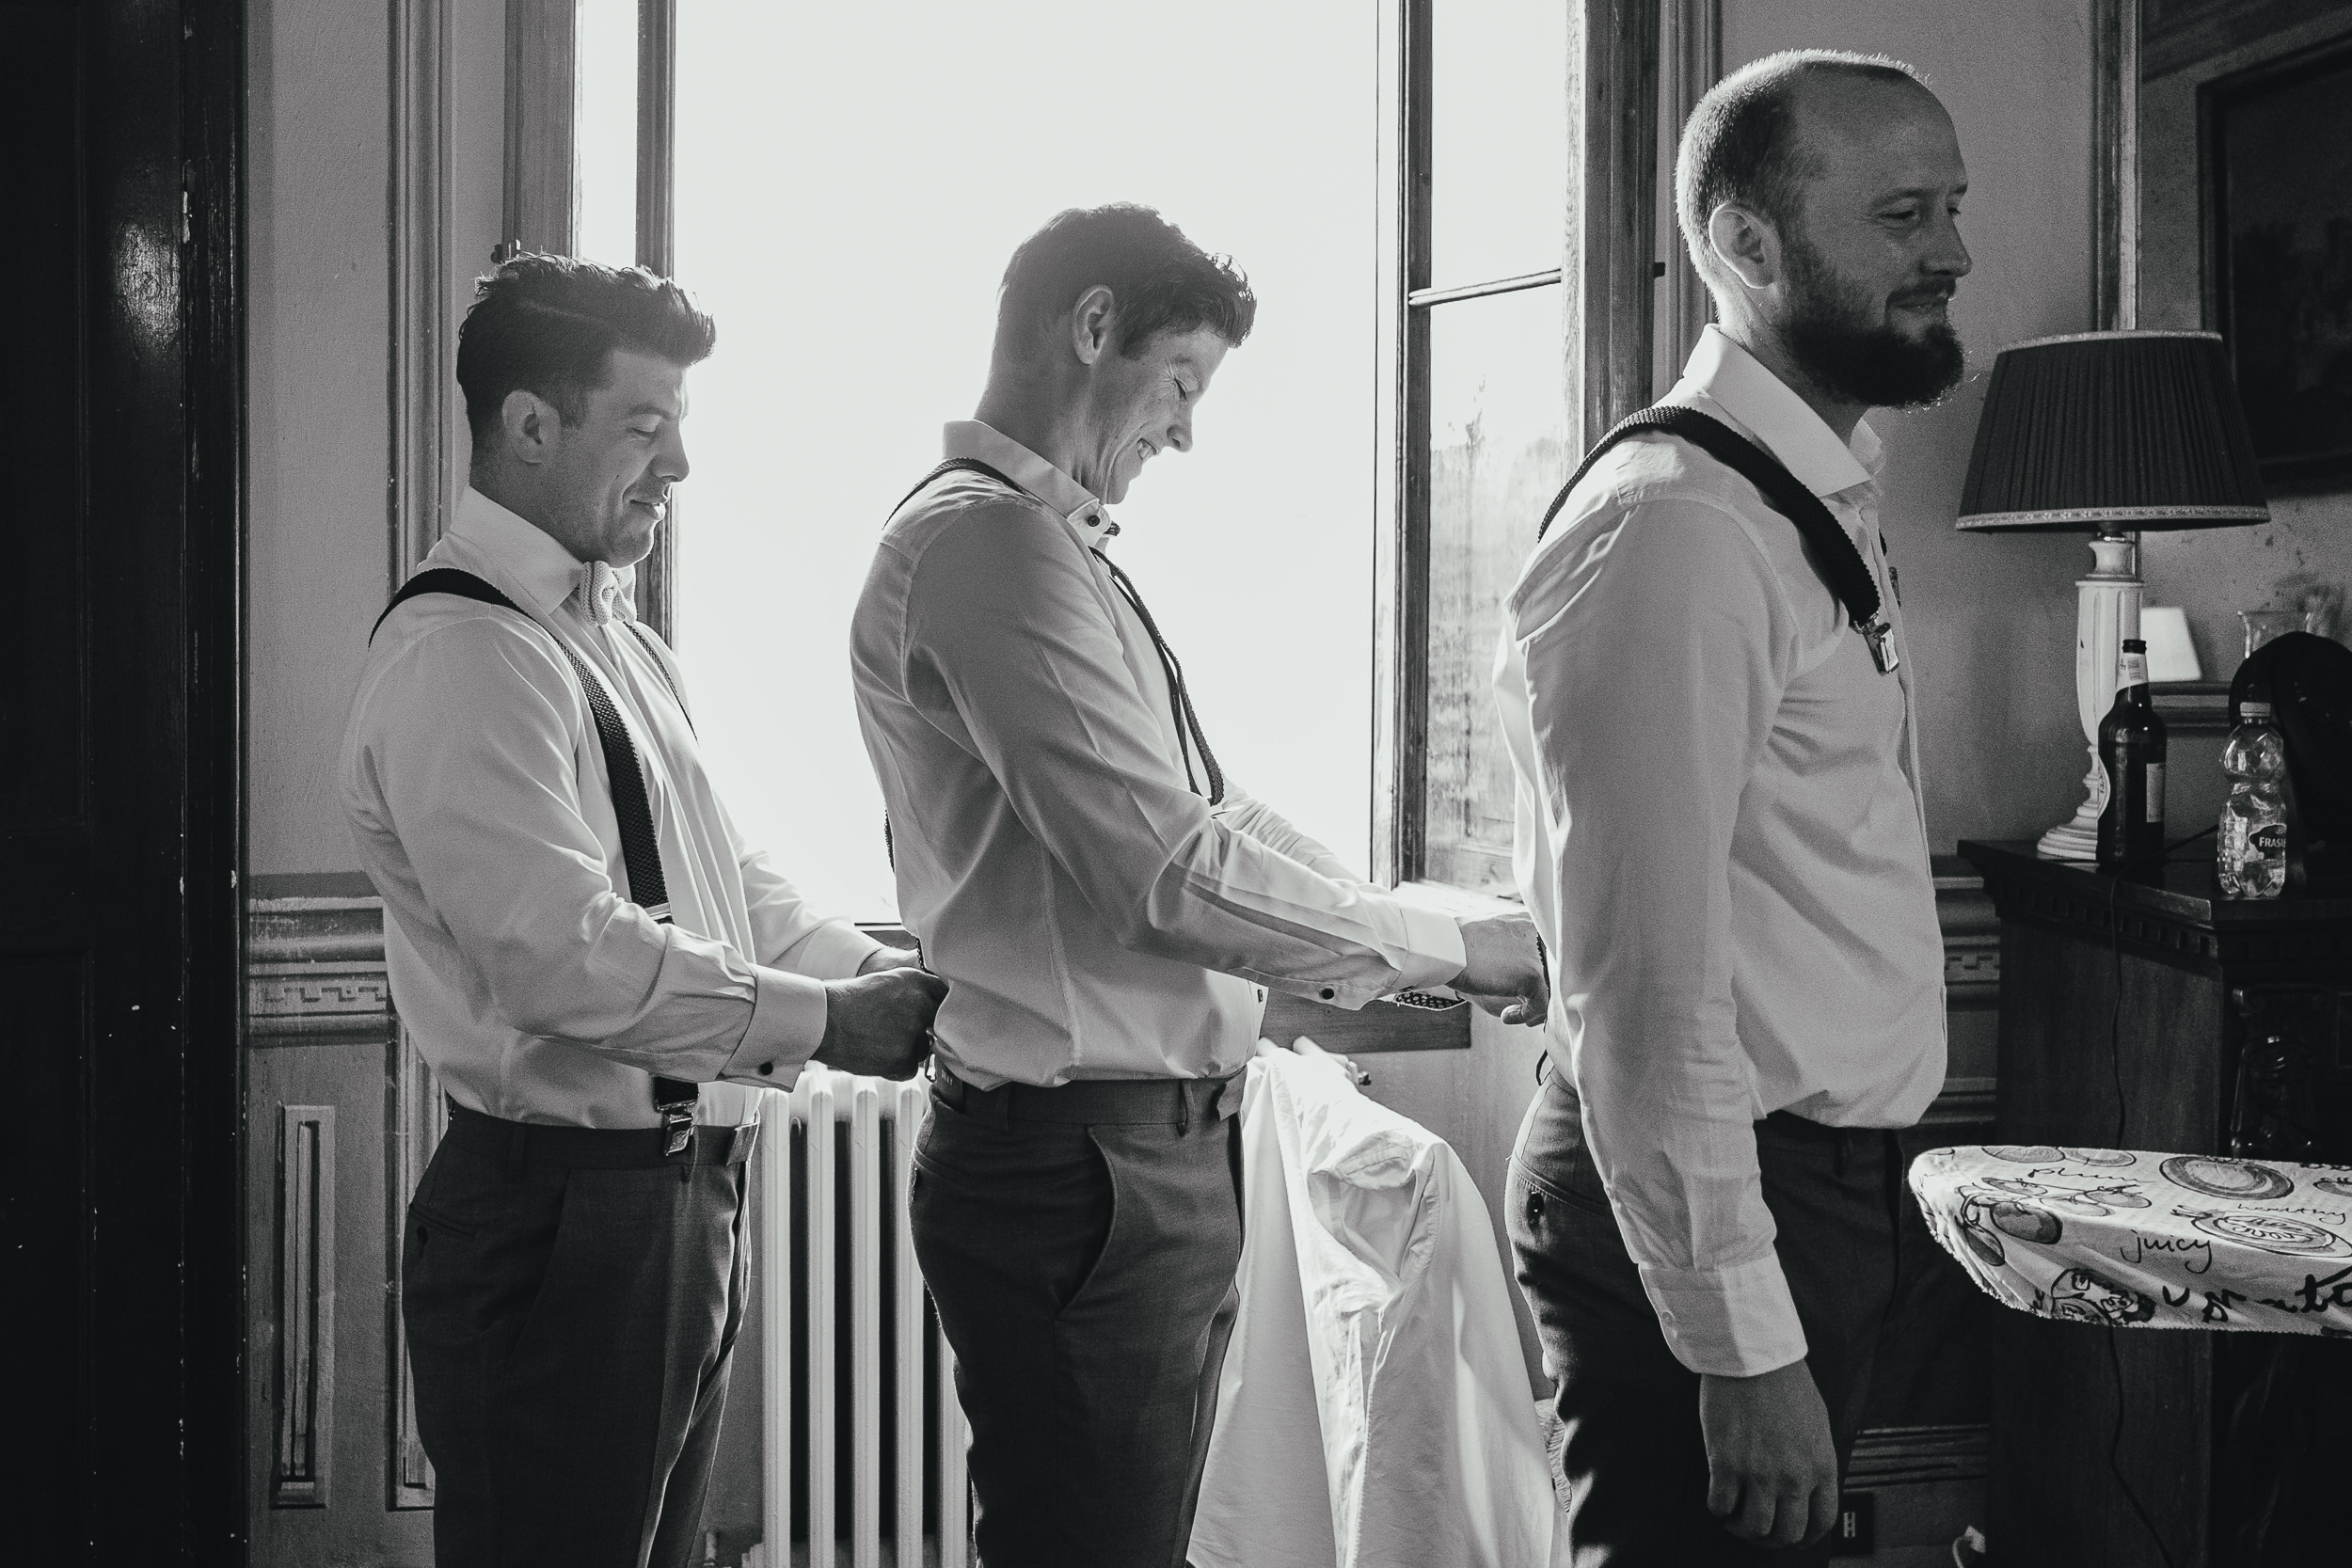 The groomsmen help each other put on their braces